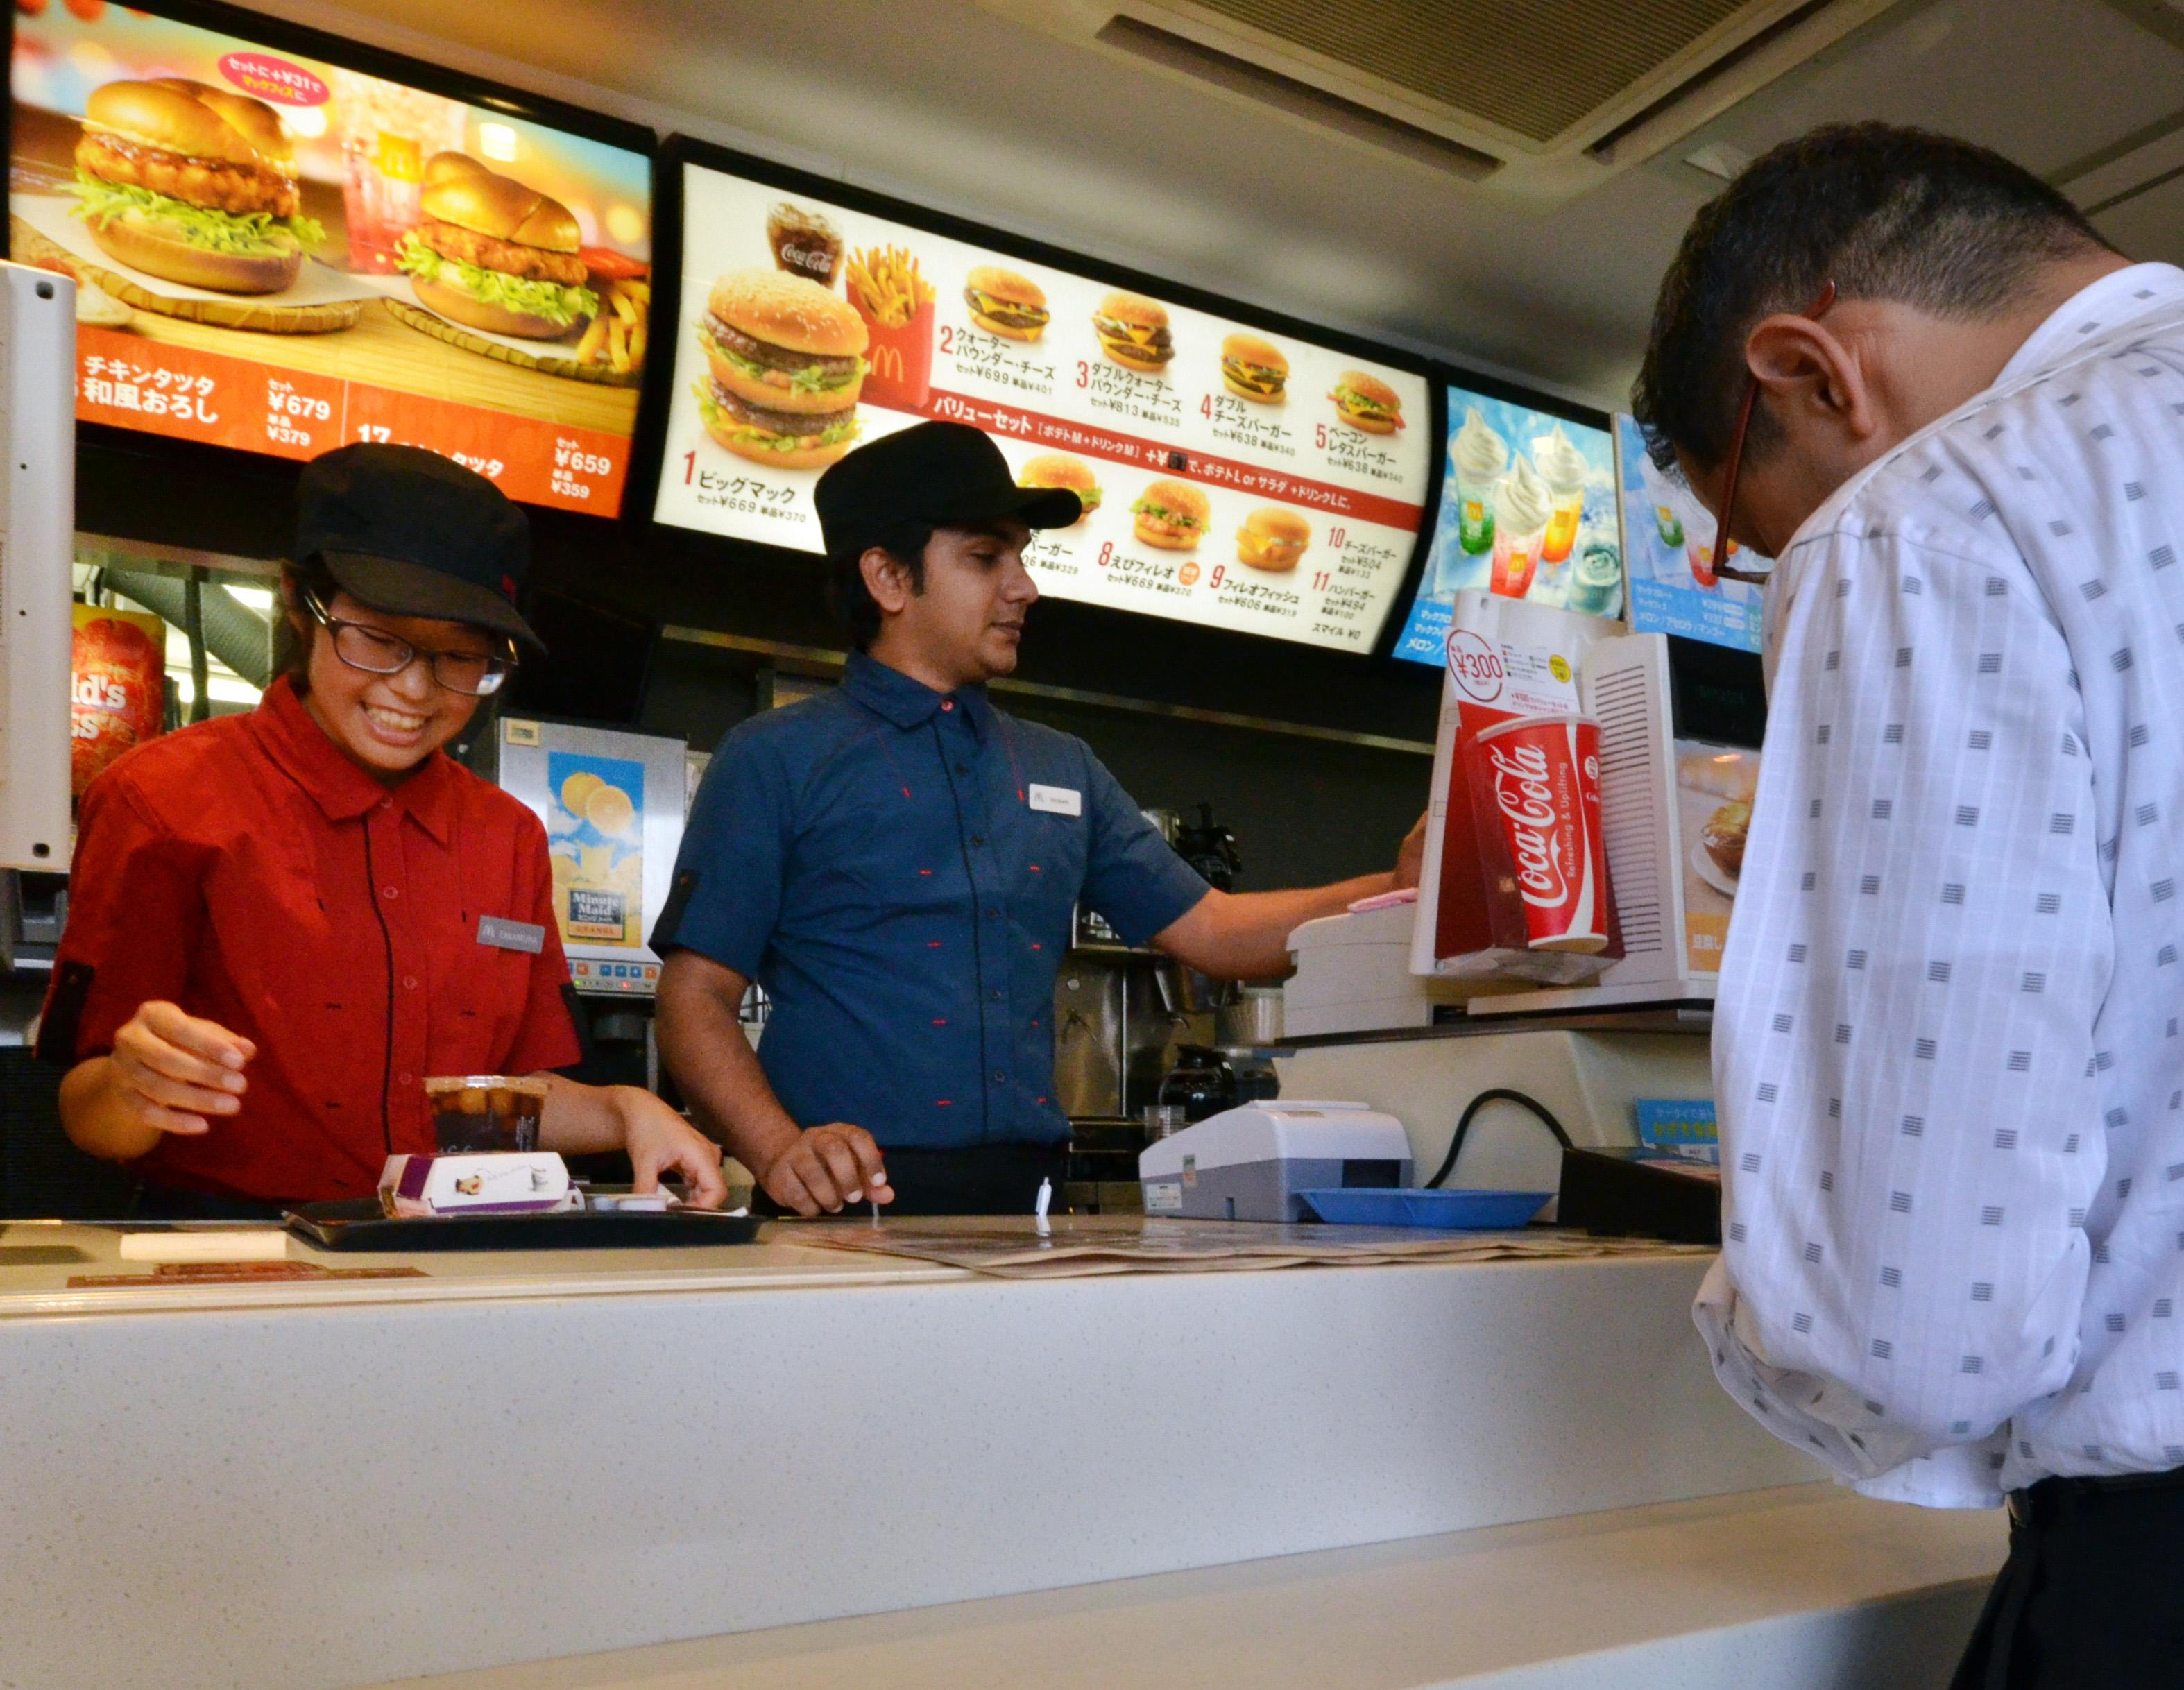 McDonald's Japan rations chips despite emergency airlift